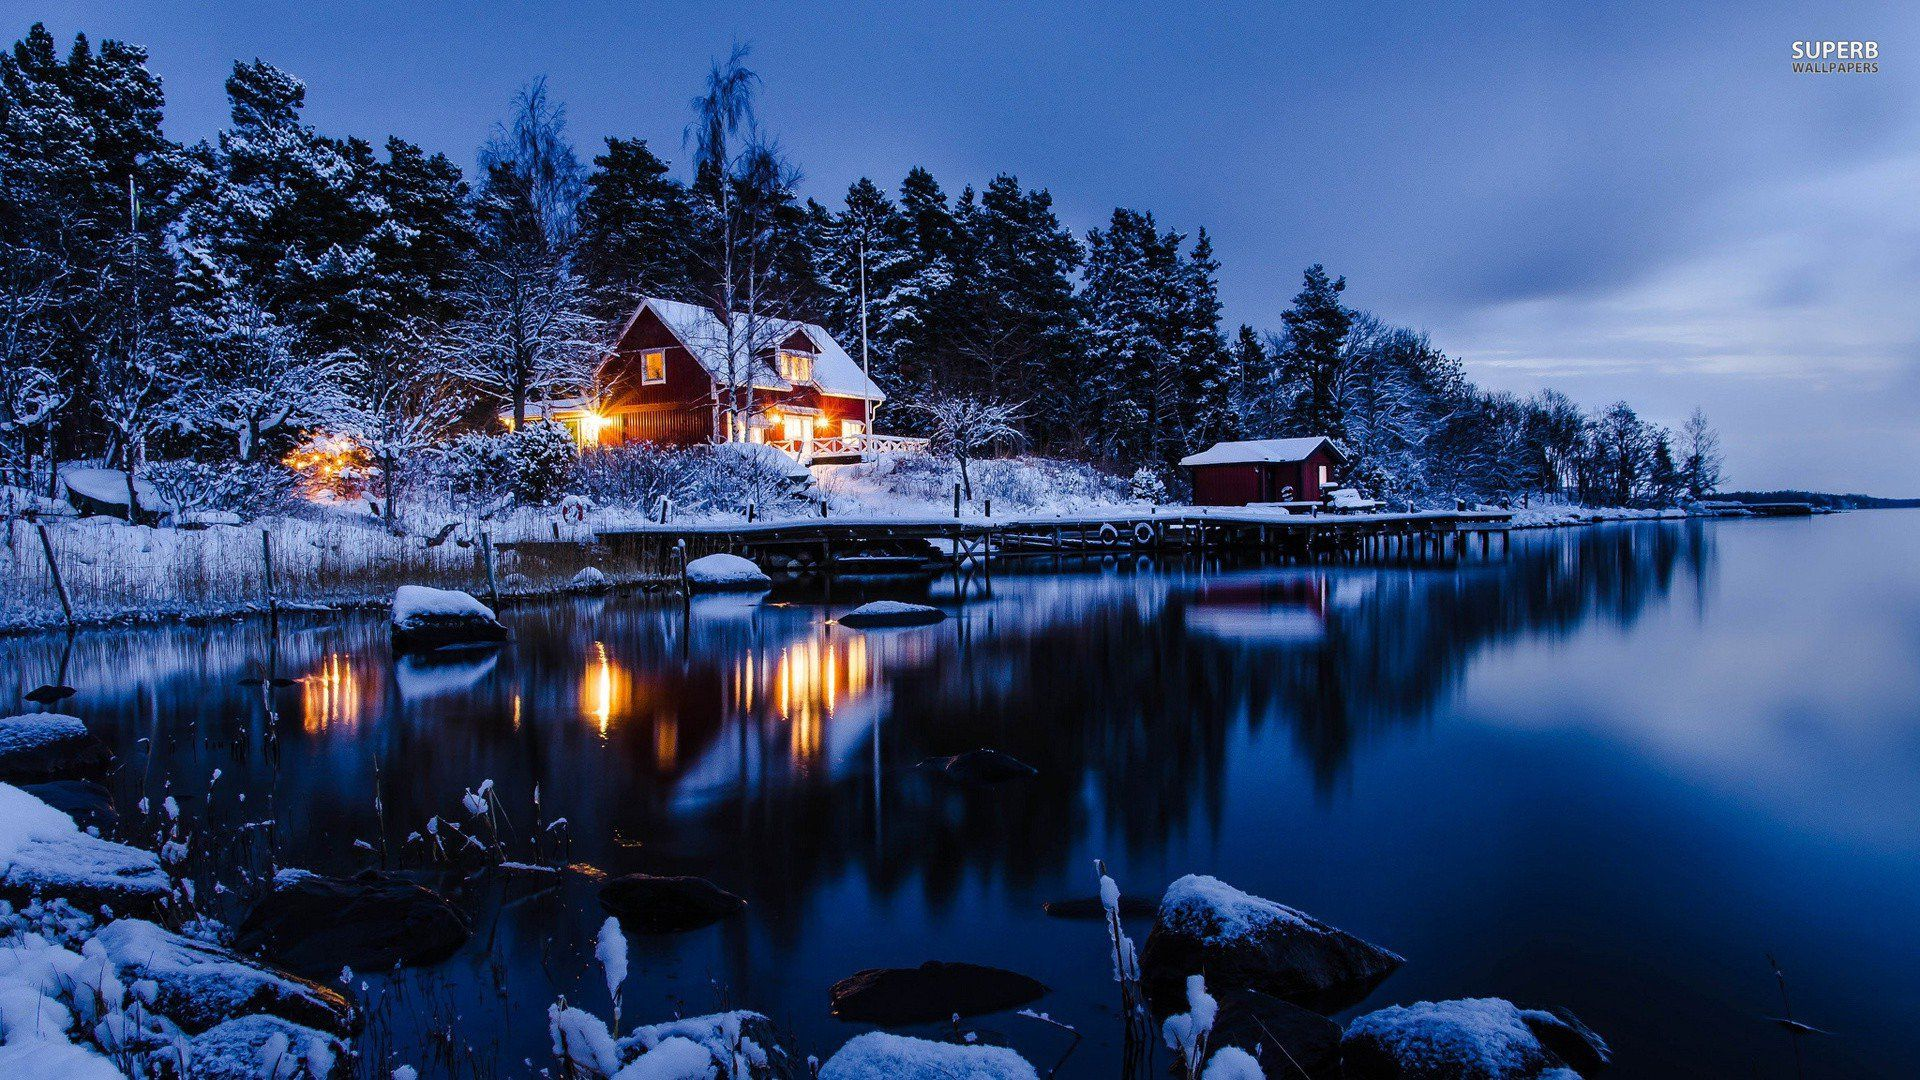 Lakeside Winter Cabin Wallpaper Coffee Books Sit Relax Read 1920x1080